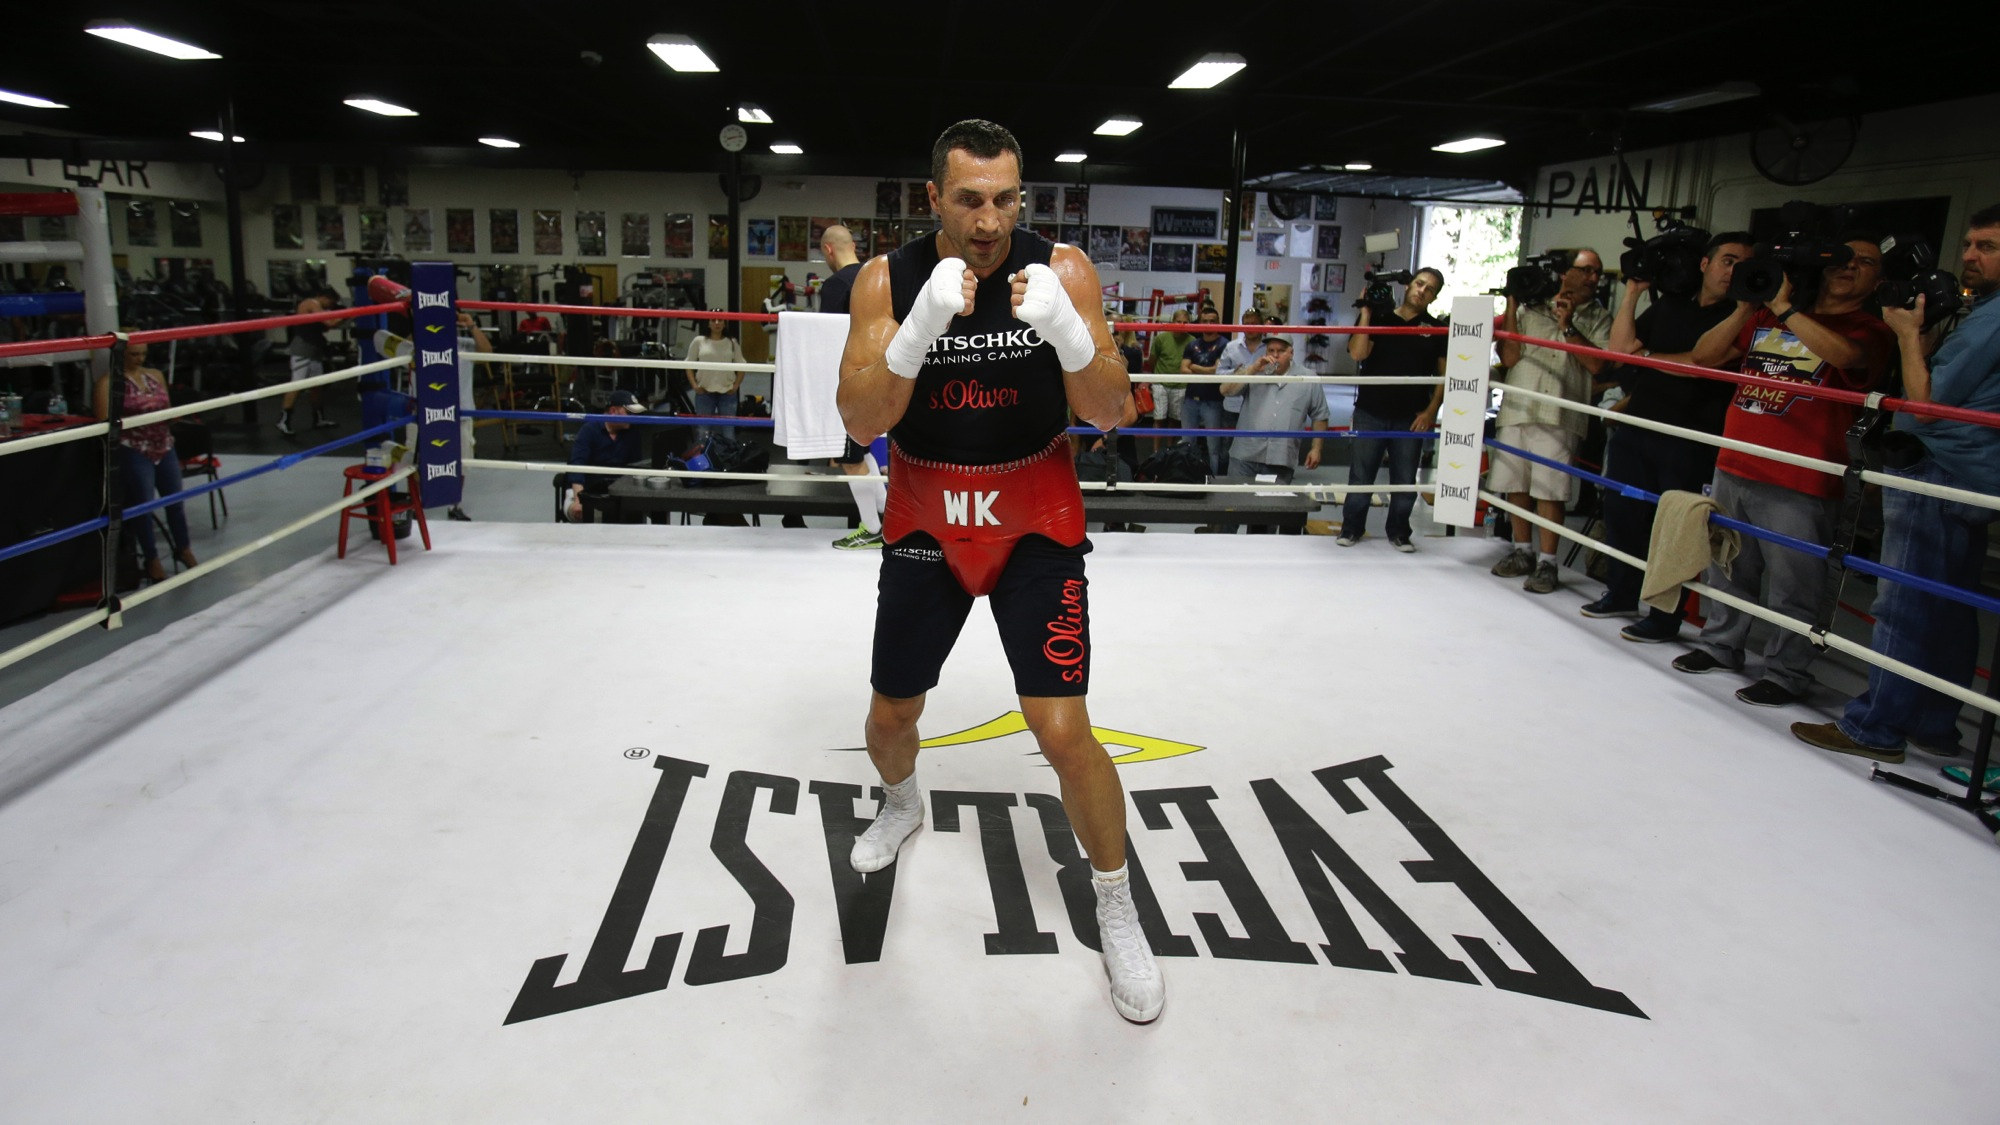 Undisputed Heavyweight World Champion boxer Wladimir Klitschko warms up in the ring during a media workout, Tuesday, April 7, 2015, in Hollywood, Fla. Klitschko will defend his WBA and IBF heavyweight titles against Bryant Jennings on April 25 at Madison Square Garden. (AP Photo/Wilfredo Lee)